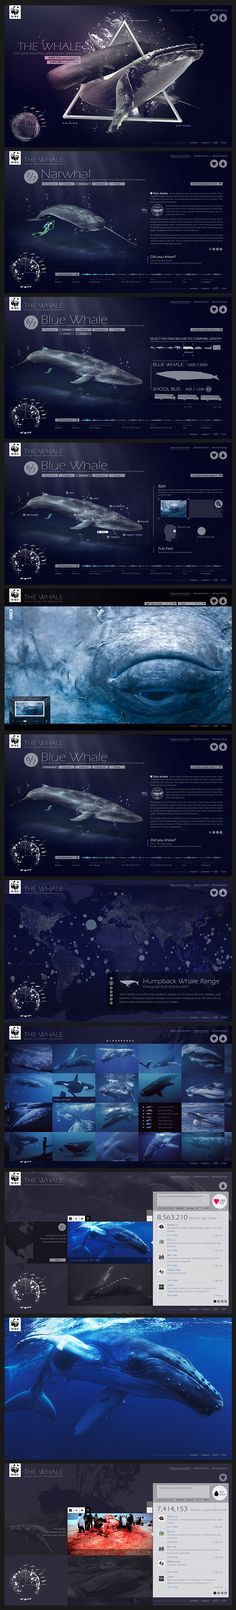 WWF - The Whale | #webdesign #it #web #design #layout #userinterface #website #webdesign